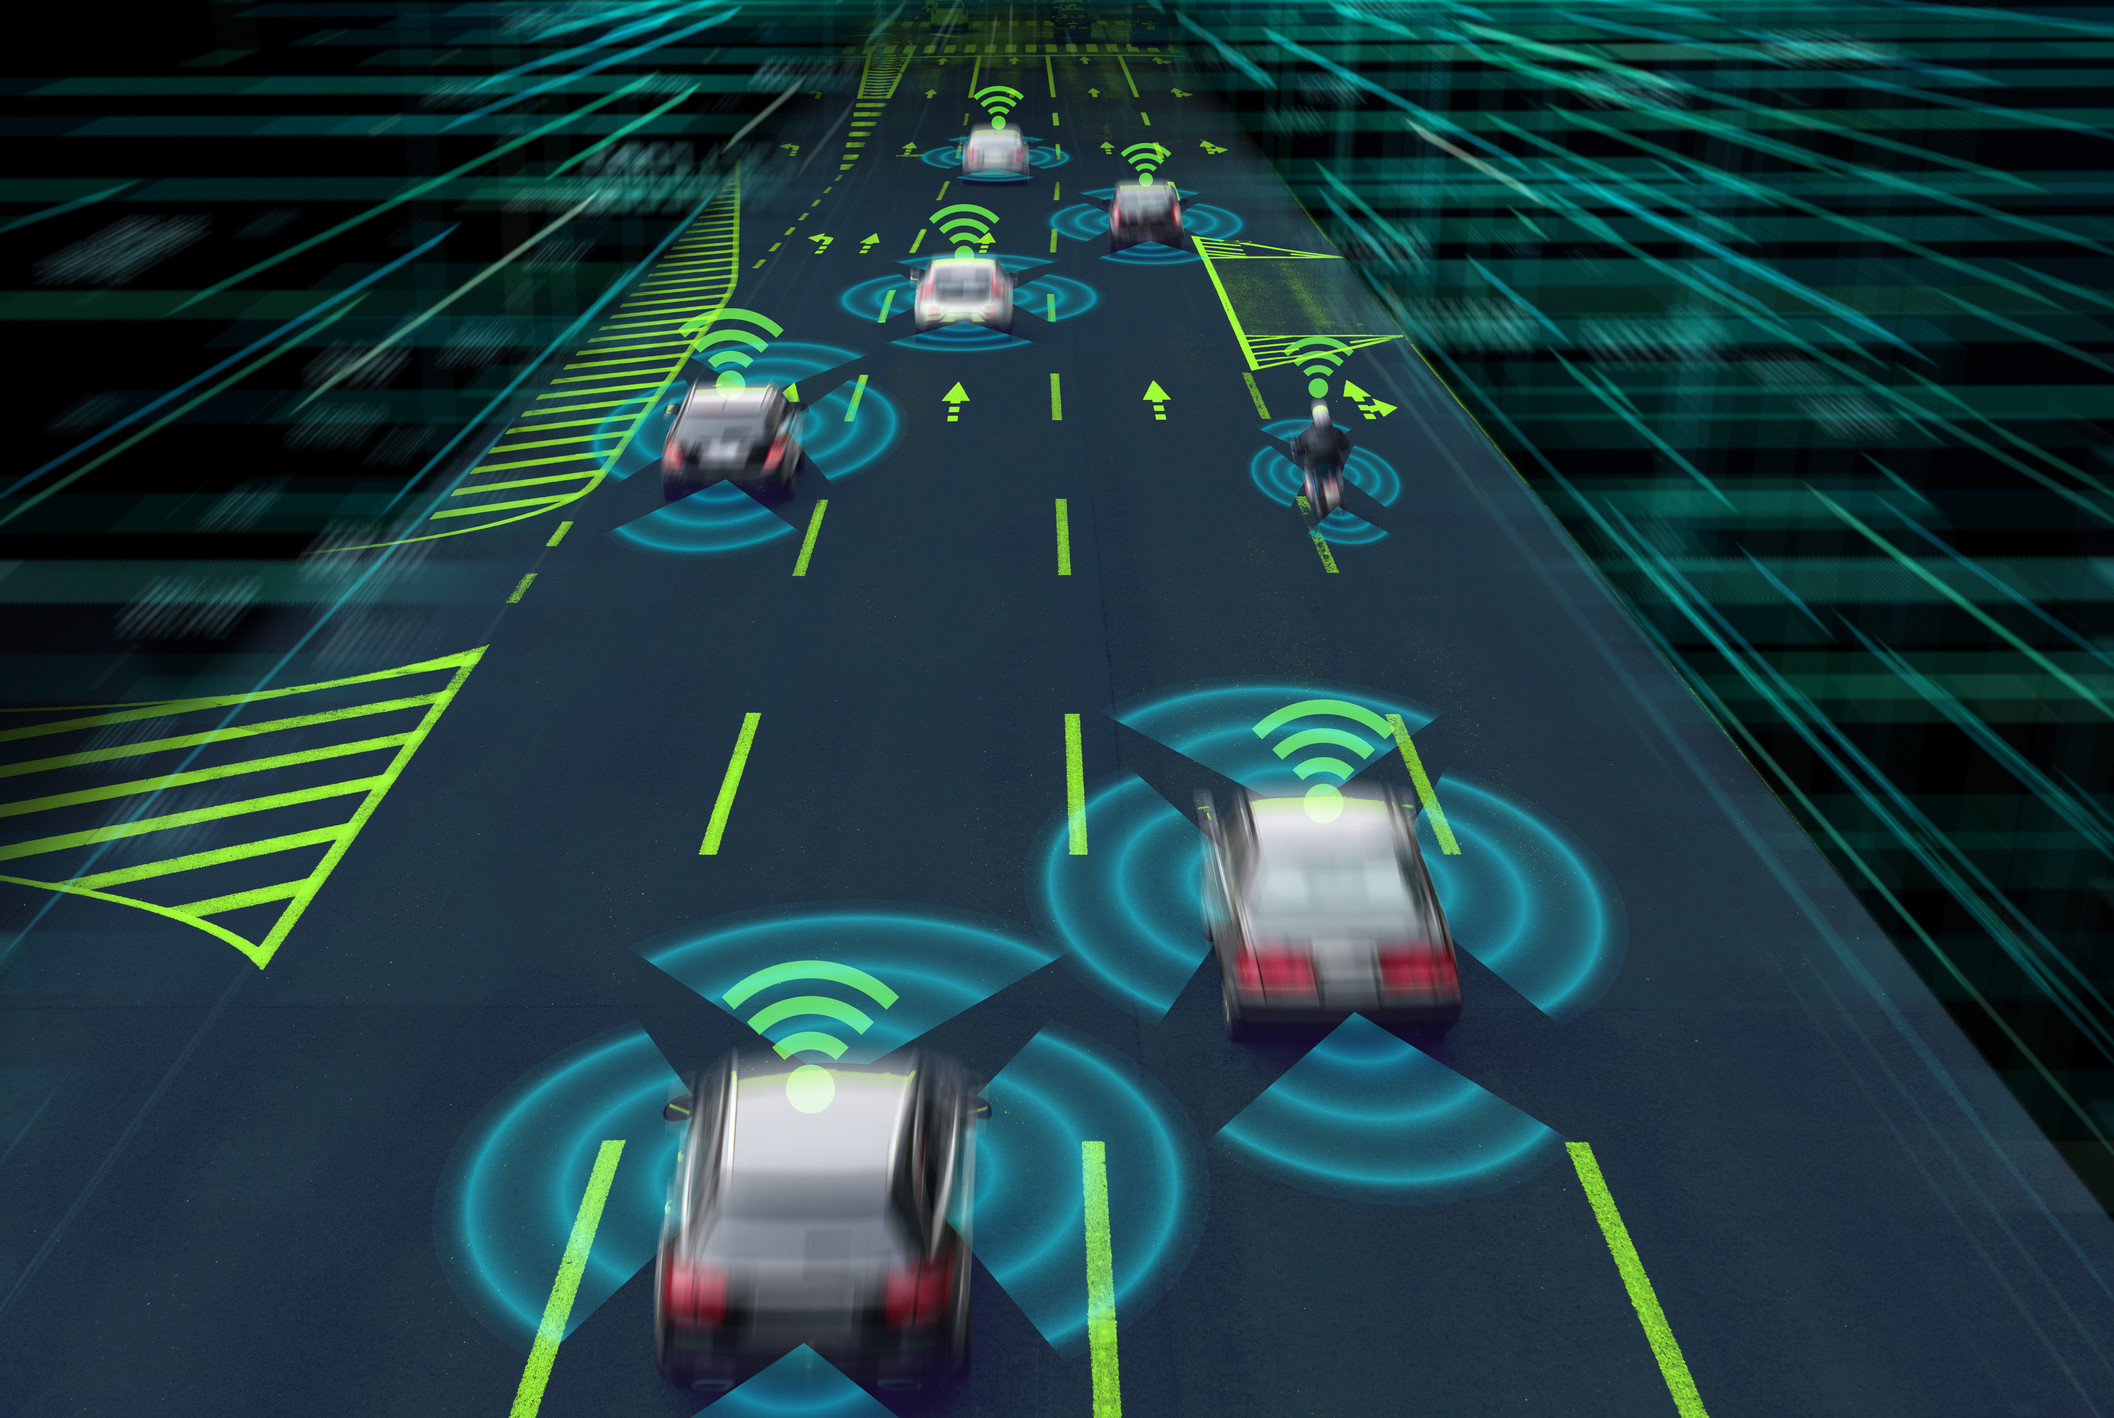 Cybersecurity's visibility problem: if a self-driving car crashes, whose responsibility is it?